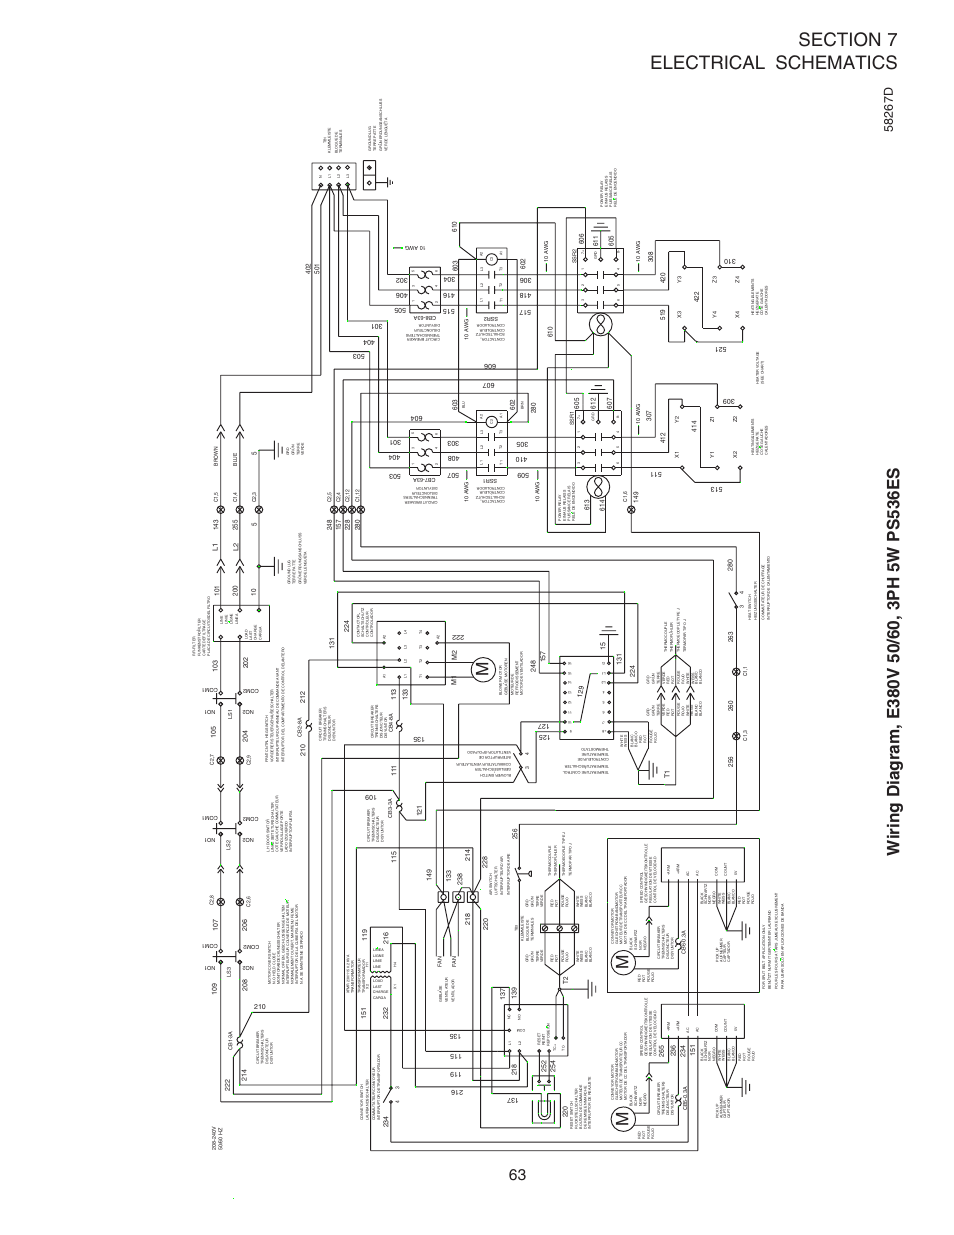 Imperial Fryer Wiring Diagram | Best Wiring Liry on oven ignitor, oven hood, oven timer, oven parts, electric oven schematic, frigidaire dishwasher schematic, panel schematic, oven stove diagram, motor control circuit schematic, sharp microwave schematic, pump symbol schematic, oven repair, gm alternator schematic, maytag washing machine schematic, oven thermostat replacement, whirlpool dryer electrical schematic, toaster oven schematic, microwave oven schematic, oven wire size, oven cabinet,